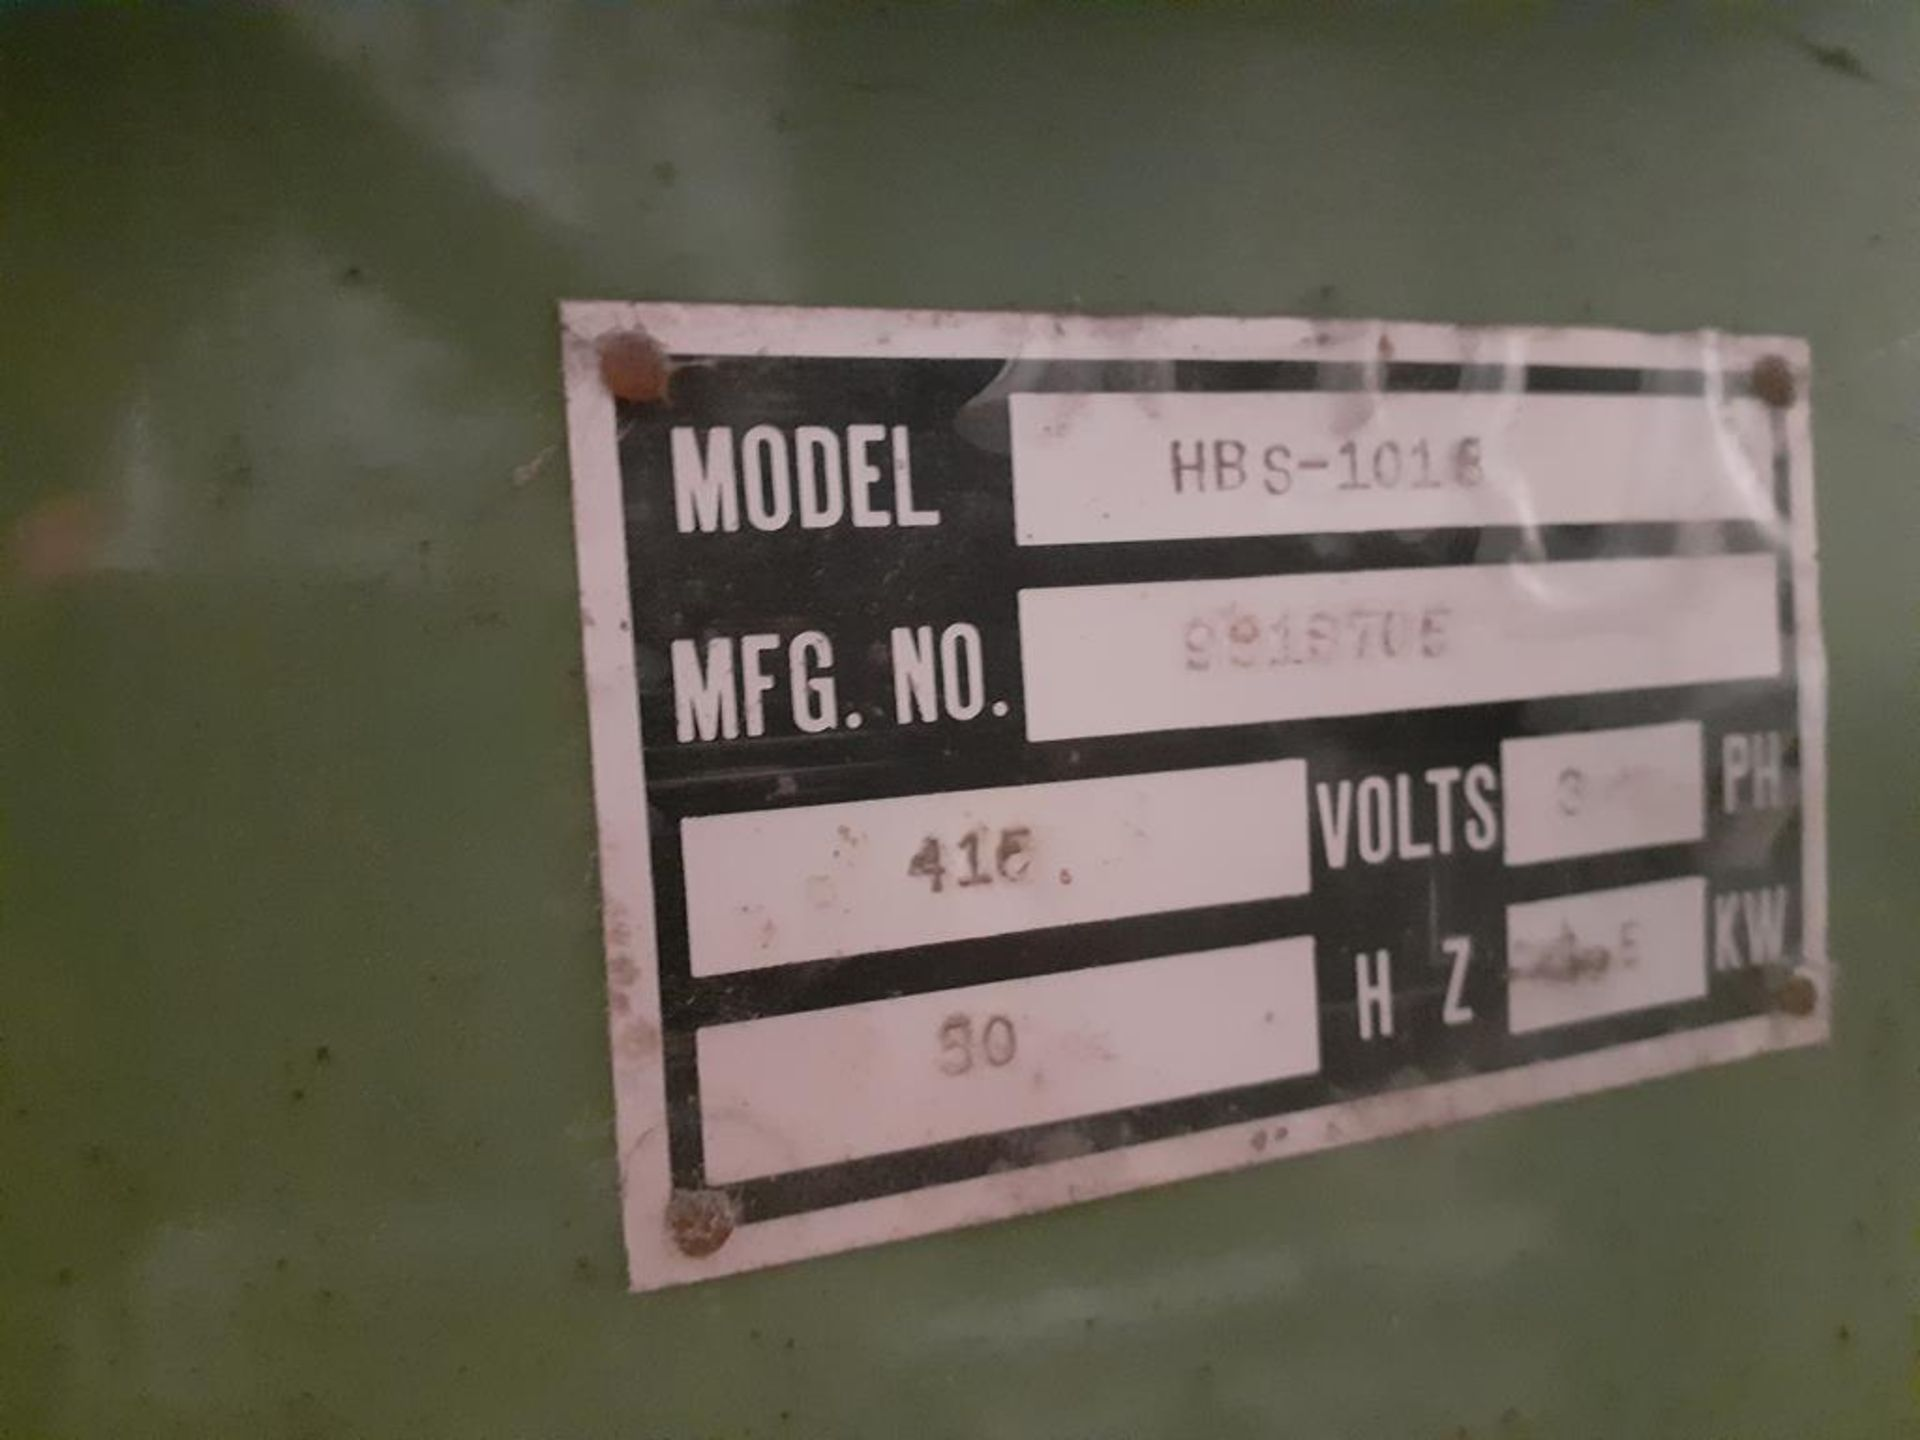 Metsaws HBS-101 8 horizontal metal working bandsaw - Image 7 of 7